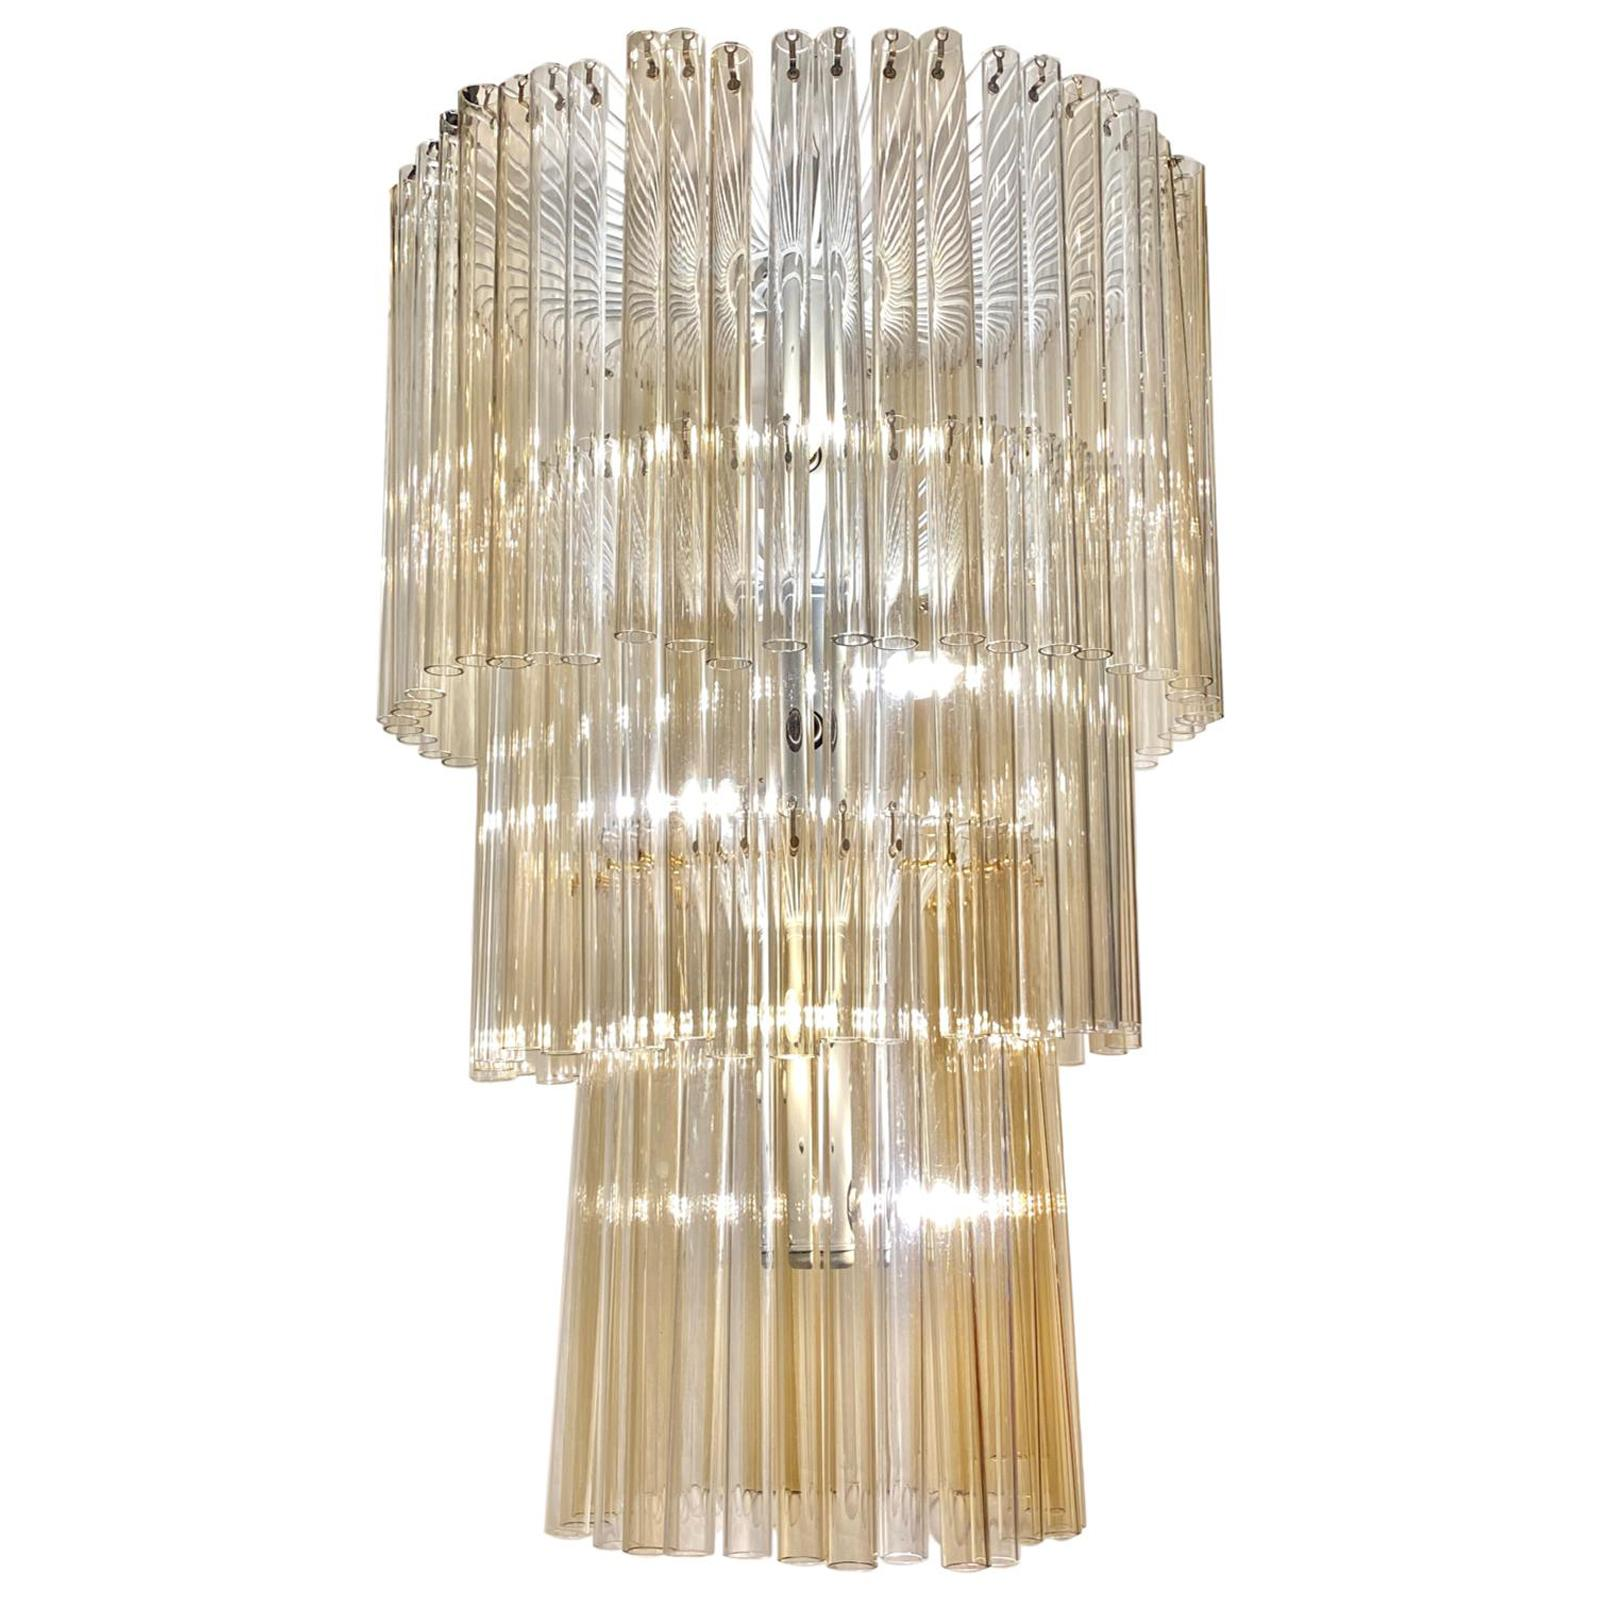 Large English Art Deco Glass Chandelier